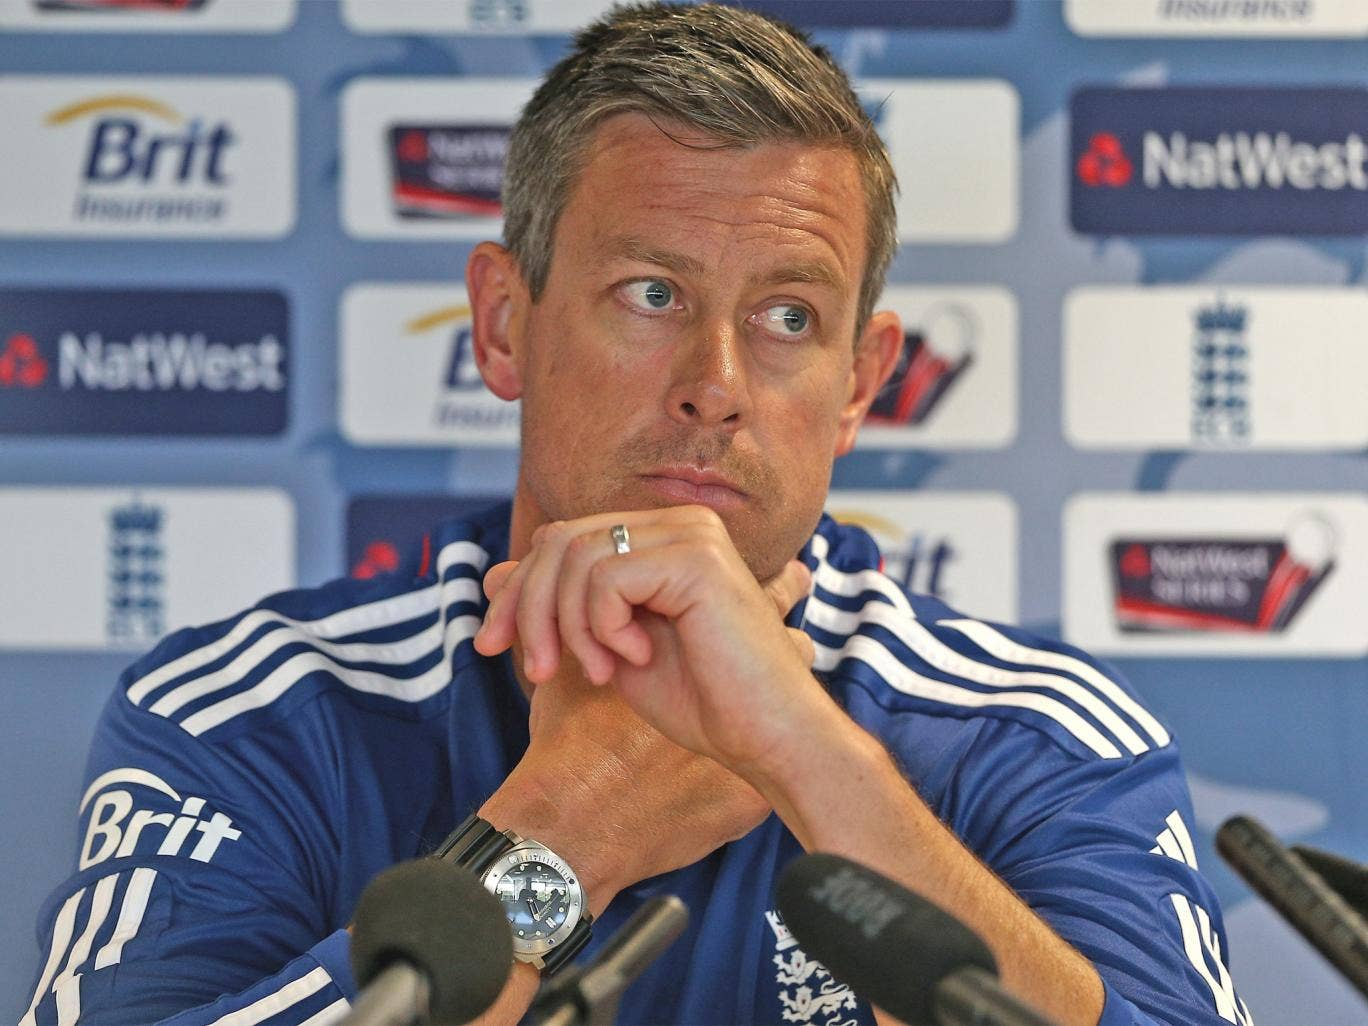 Ashley Giles was not amused at Tuesday's press conference